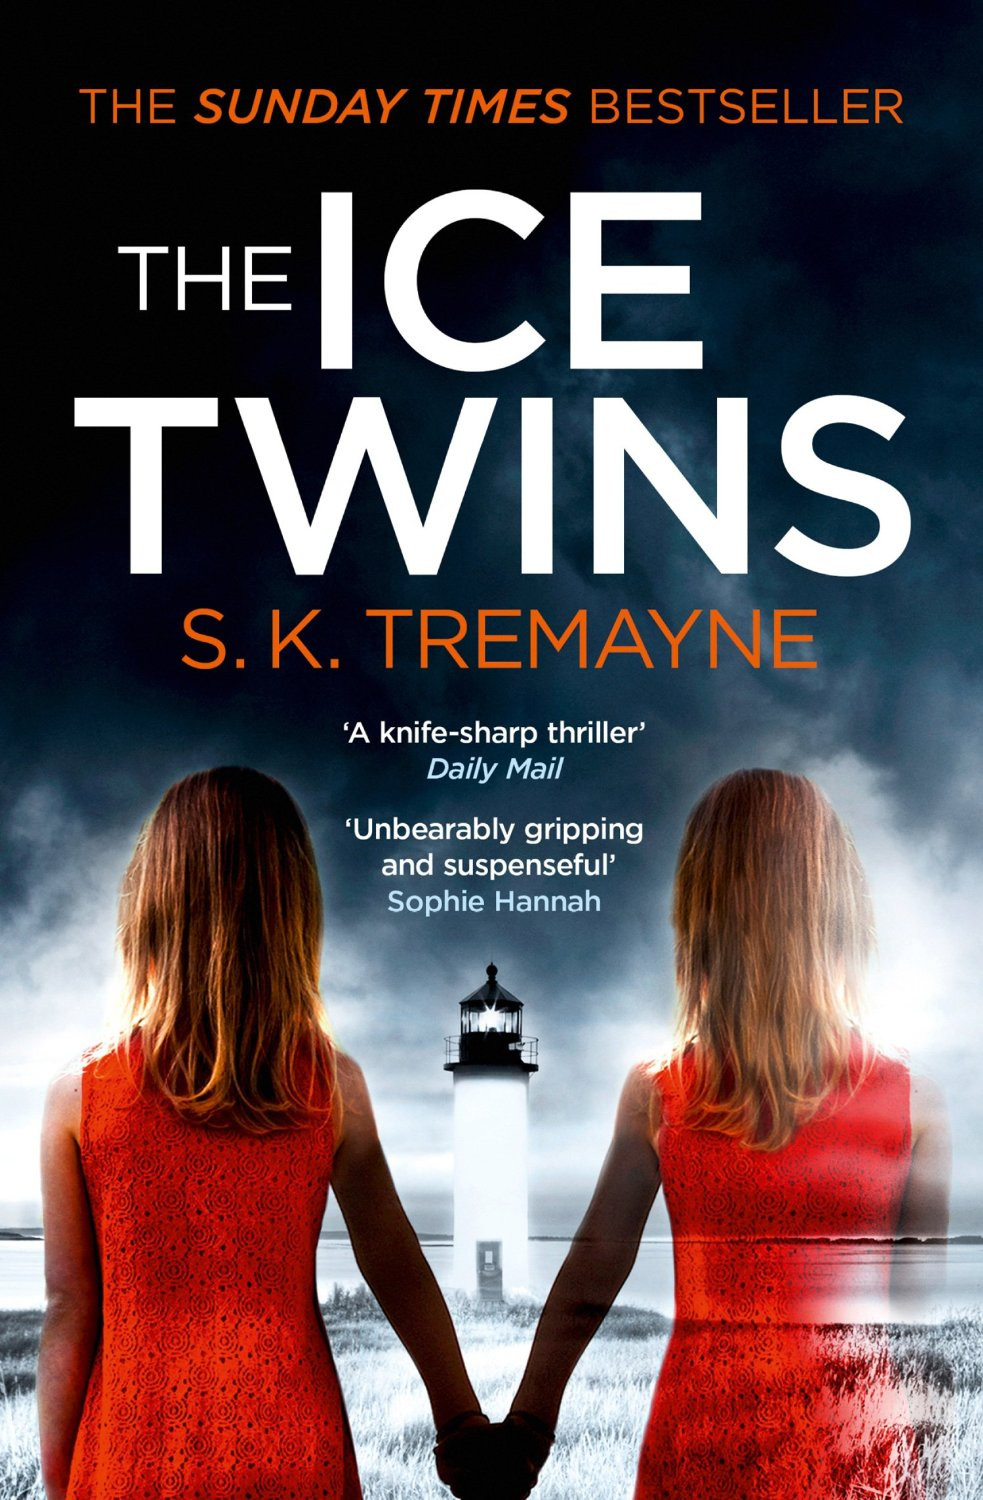 The Ice Twins, SK Tremayne. Review by Barbara Copperthwaite